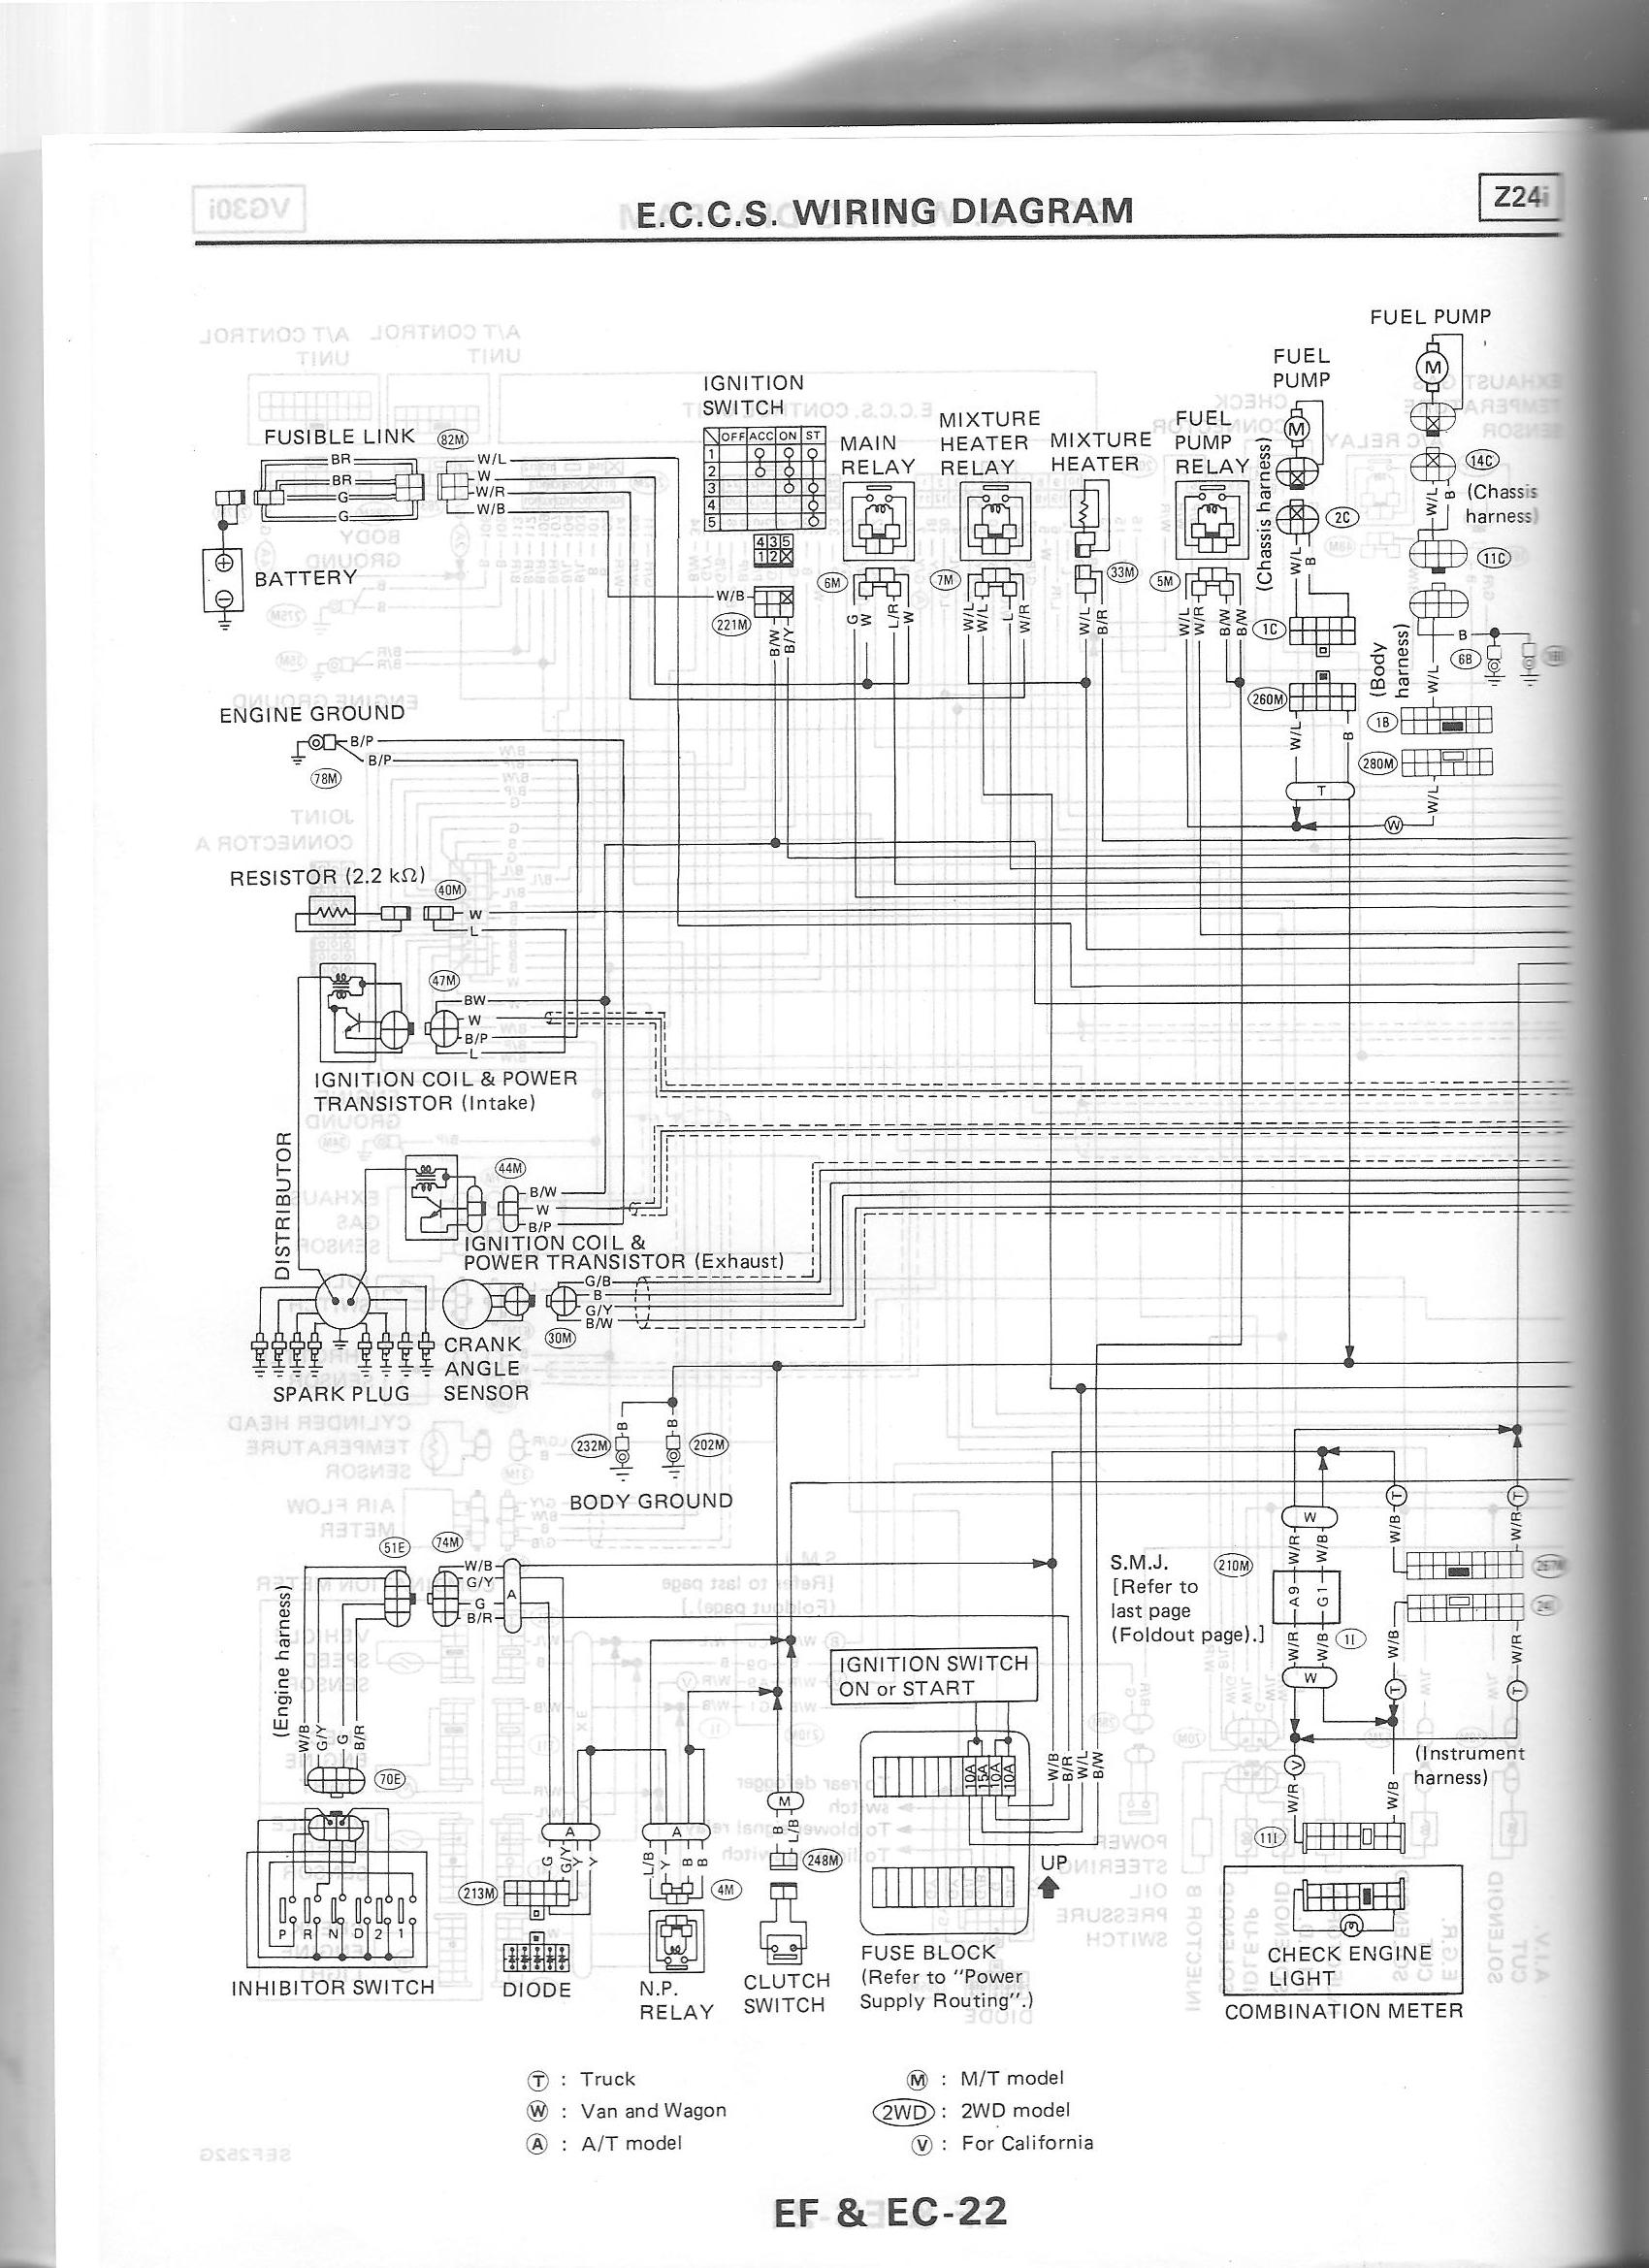 Nissan Nut 87 Mustang Main Harness Wiring Diagram Free Picture 1988 Z24i Schematic